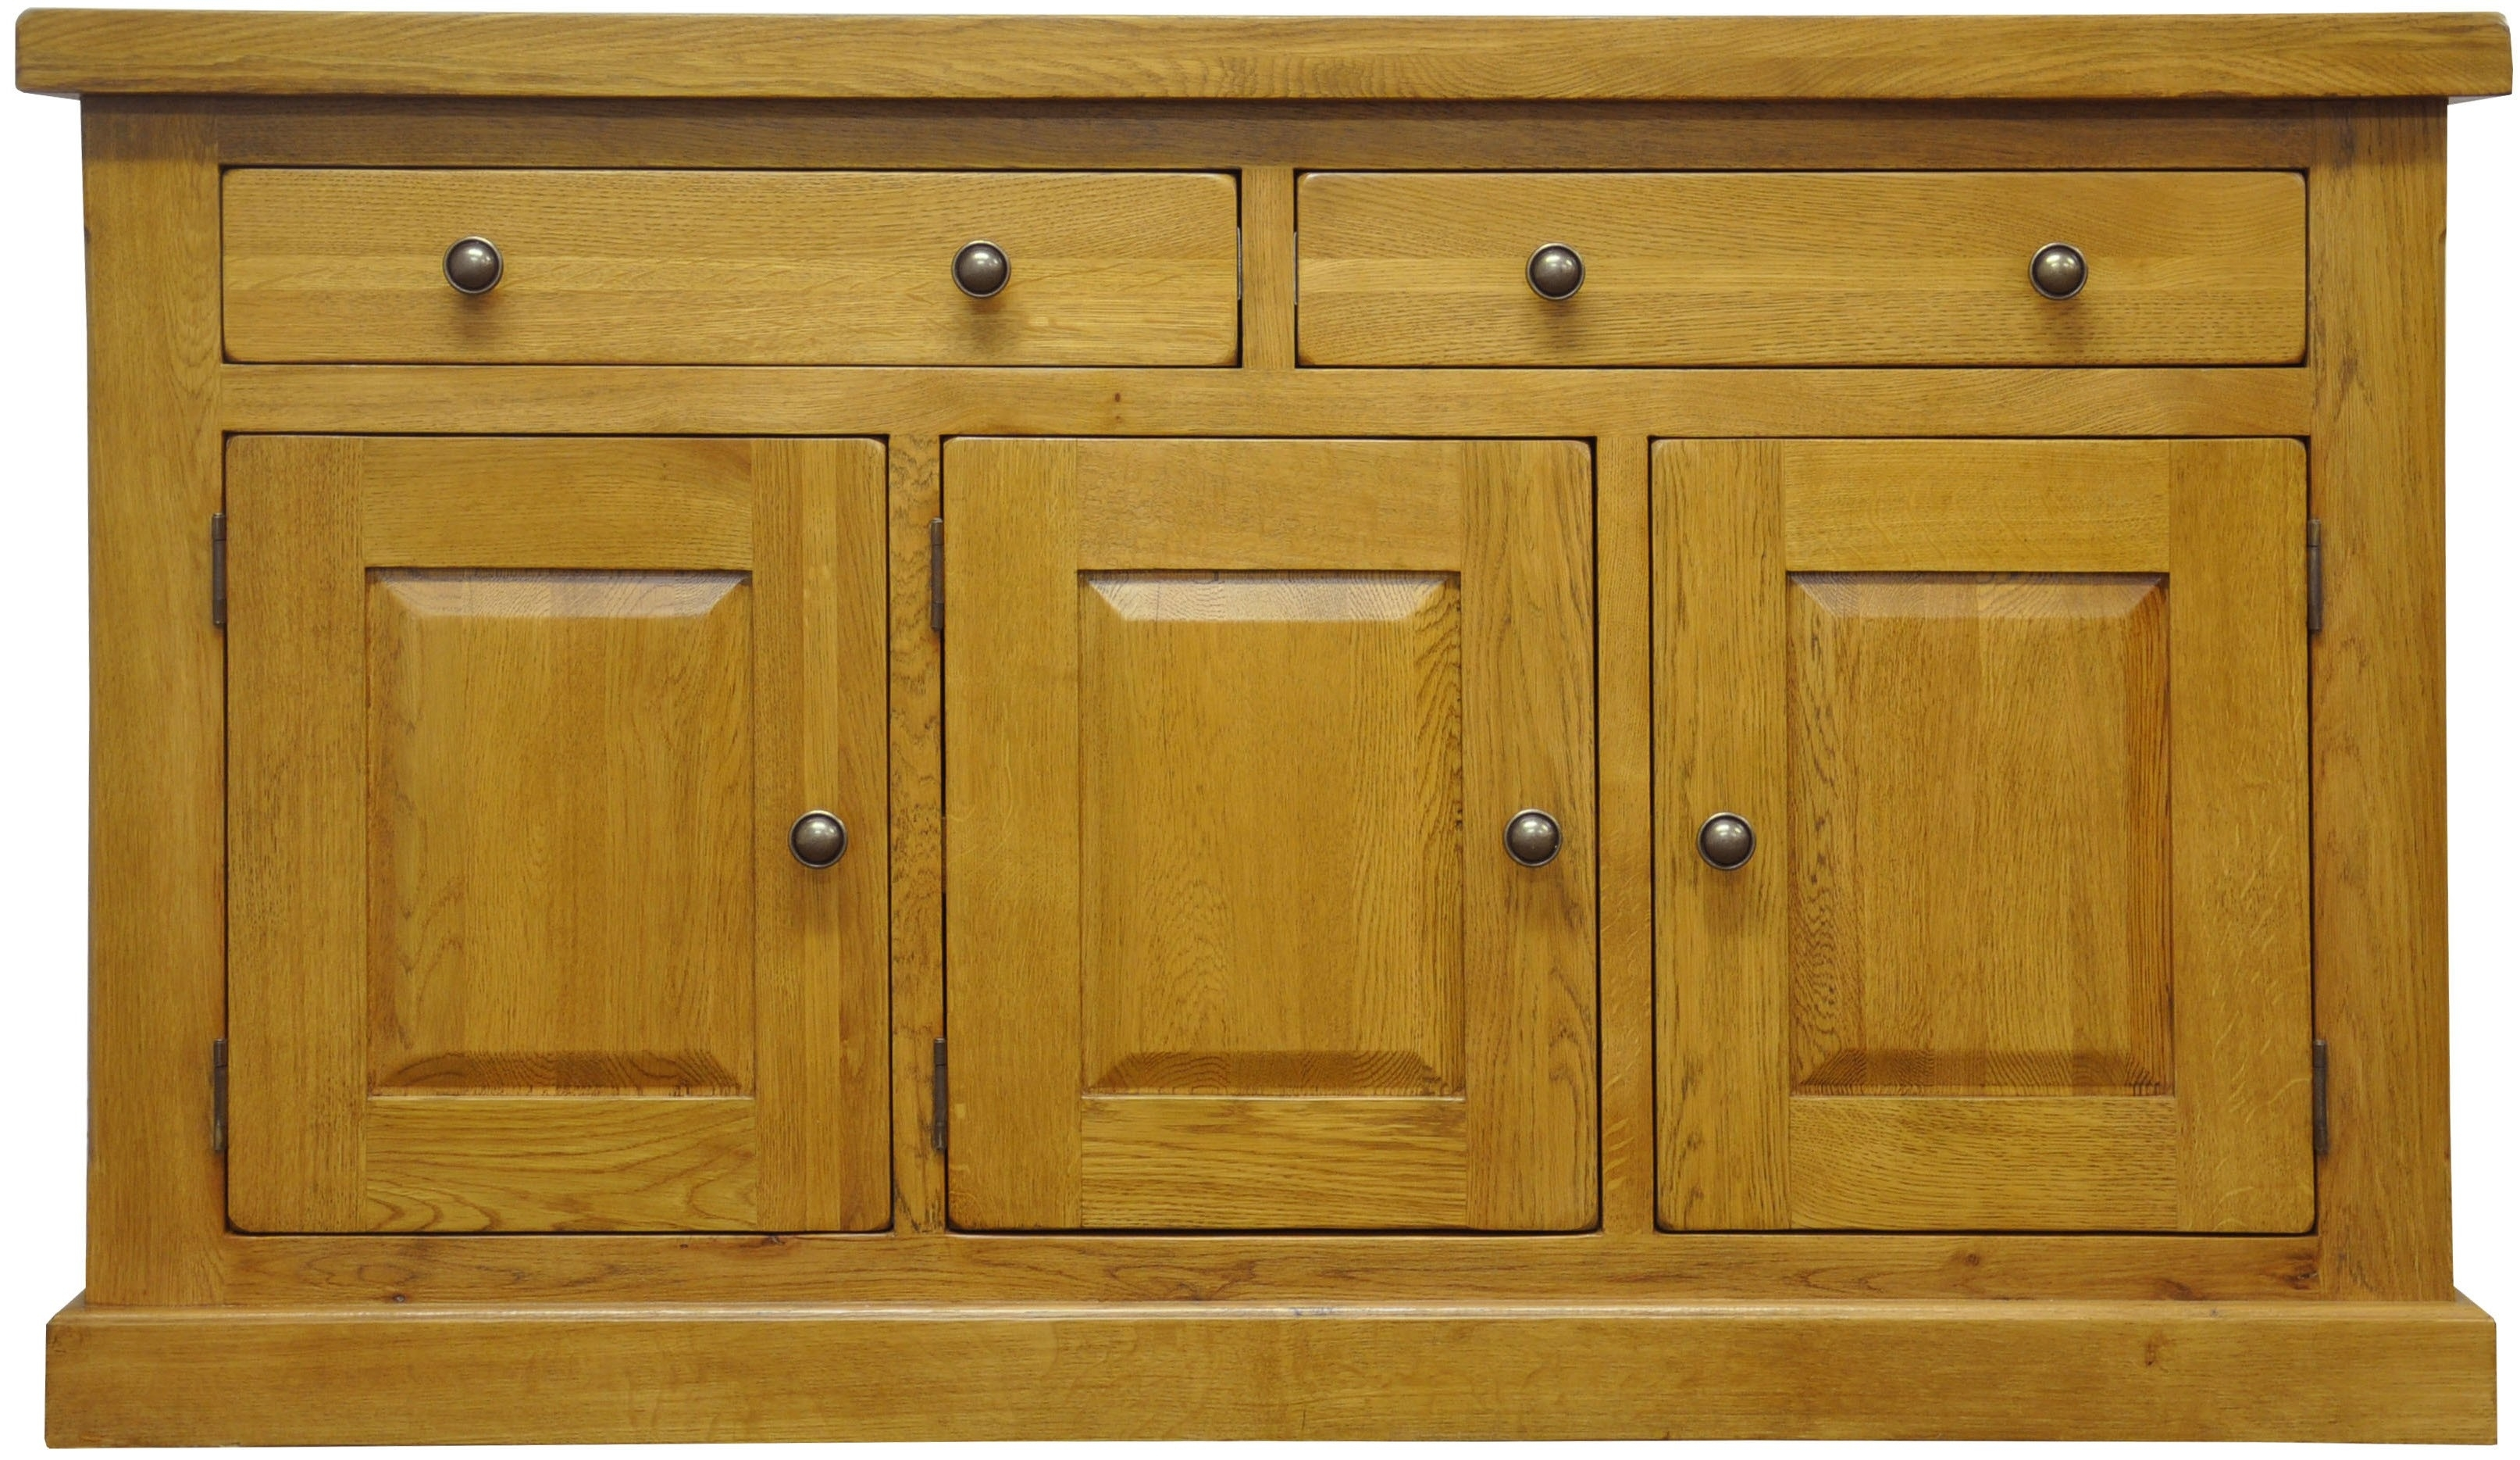 Henley 3 Door 2 Drawer Sideboard | Style Our Home pertaining to 2-Drawer Sideboards (Image 16 of 30)